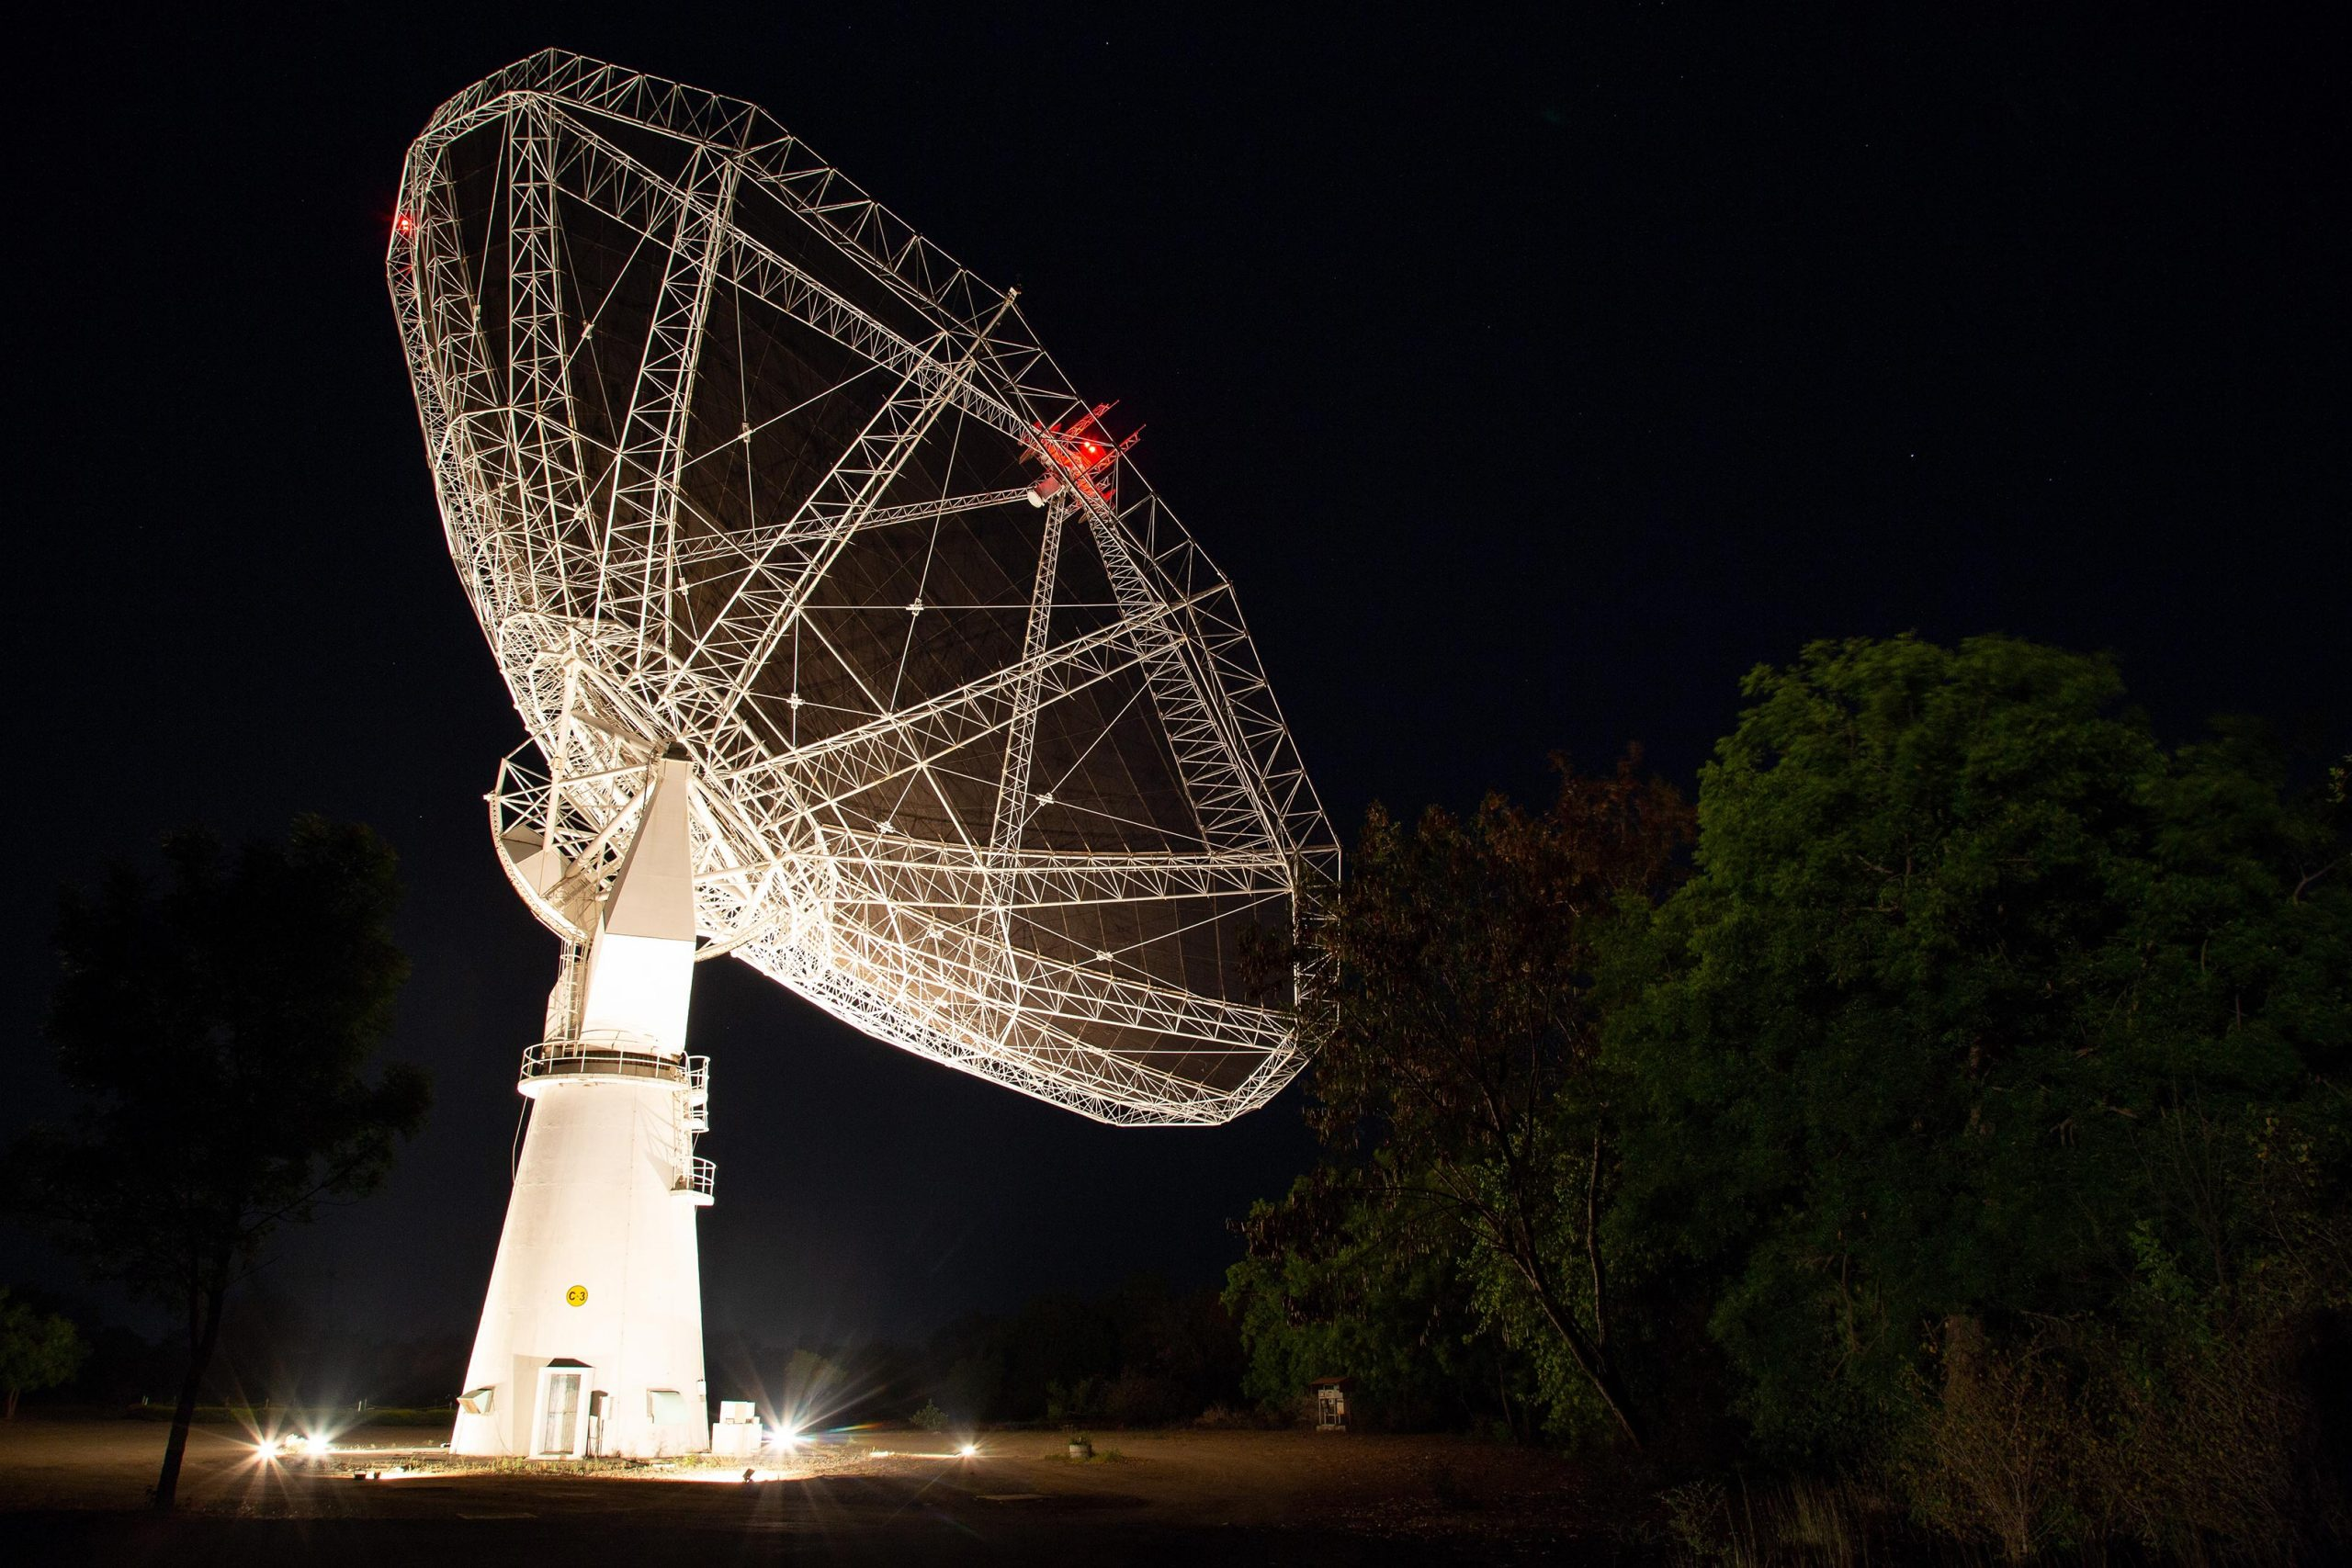 Mass of Hydrogen in Distant Galaxies Measured by Upgraded Giant Metrewave Radio Telescope - SciTechDaily